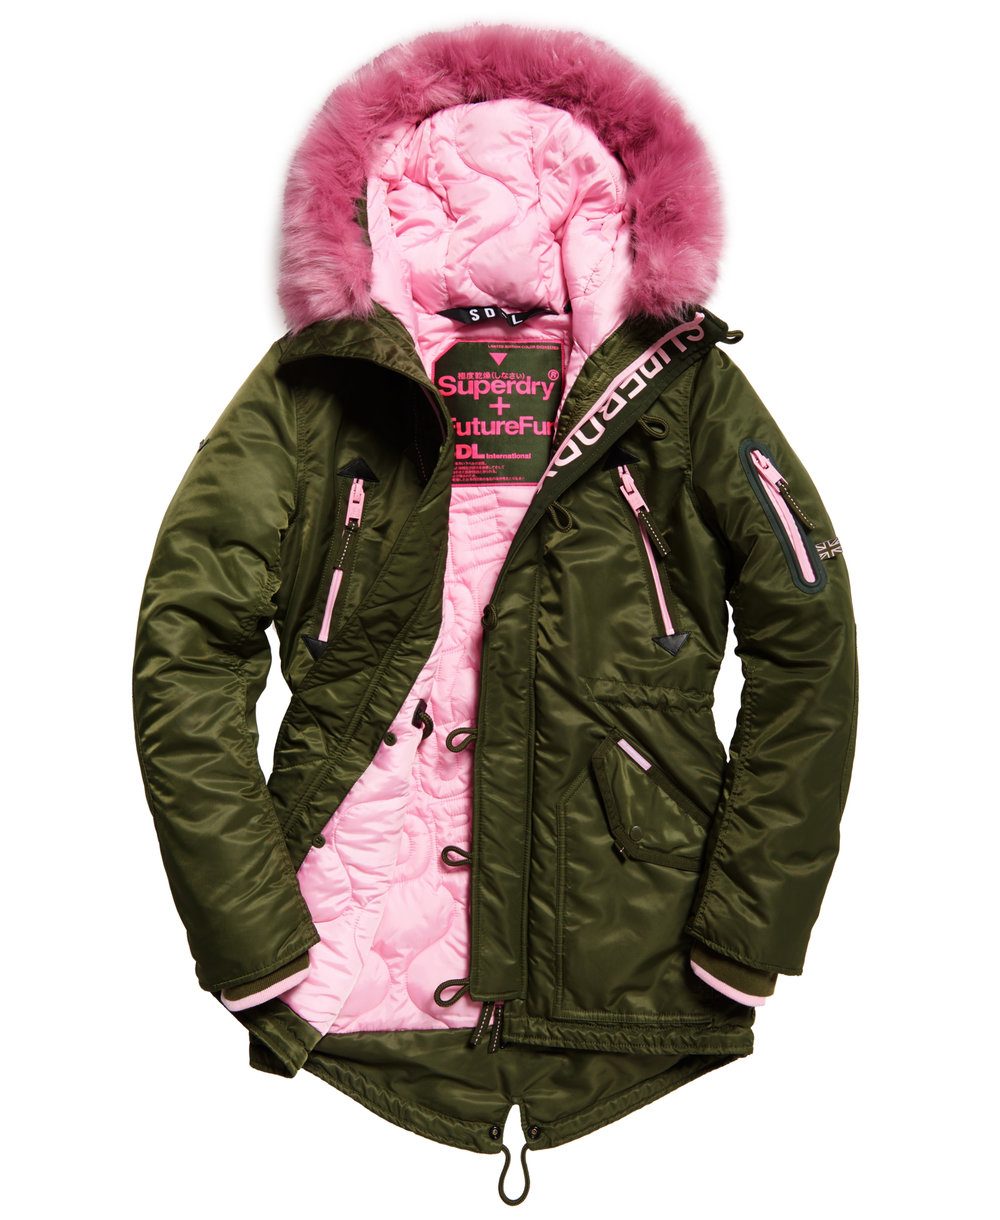 Superdry SD-L Parka Coat £144.99 - 209.95€ www.superdry.com.jpg